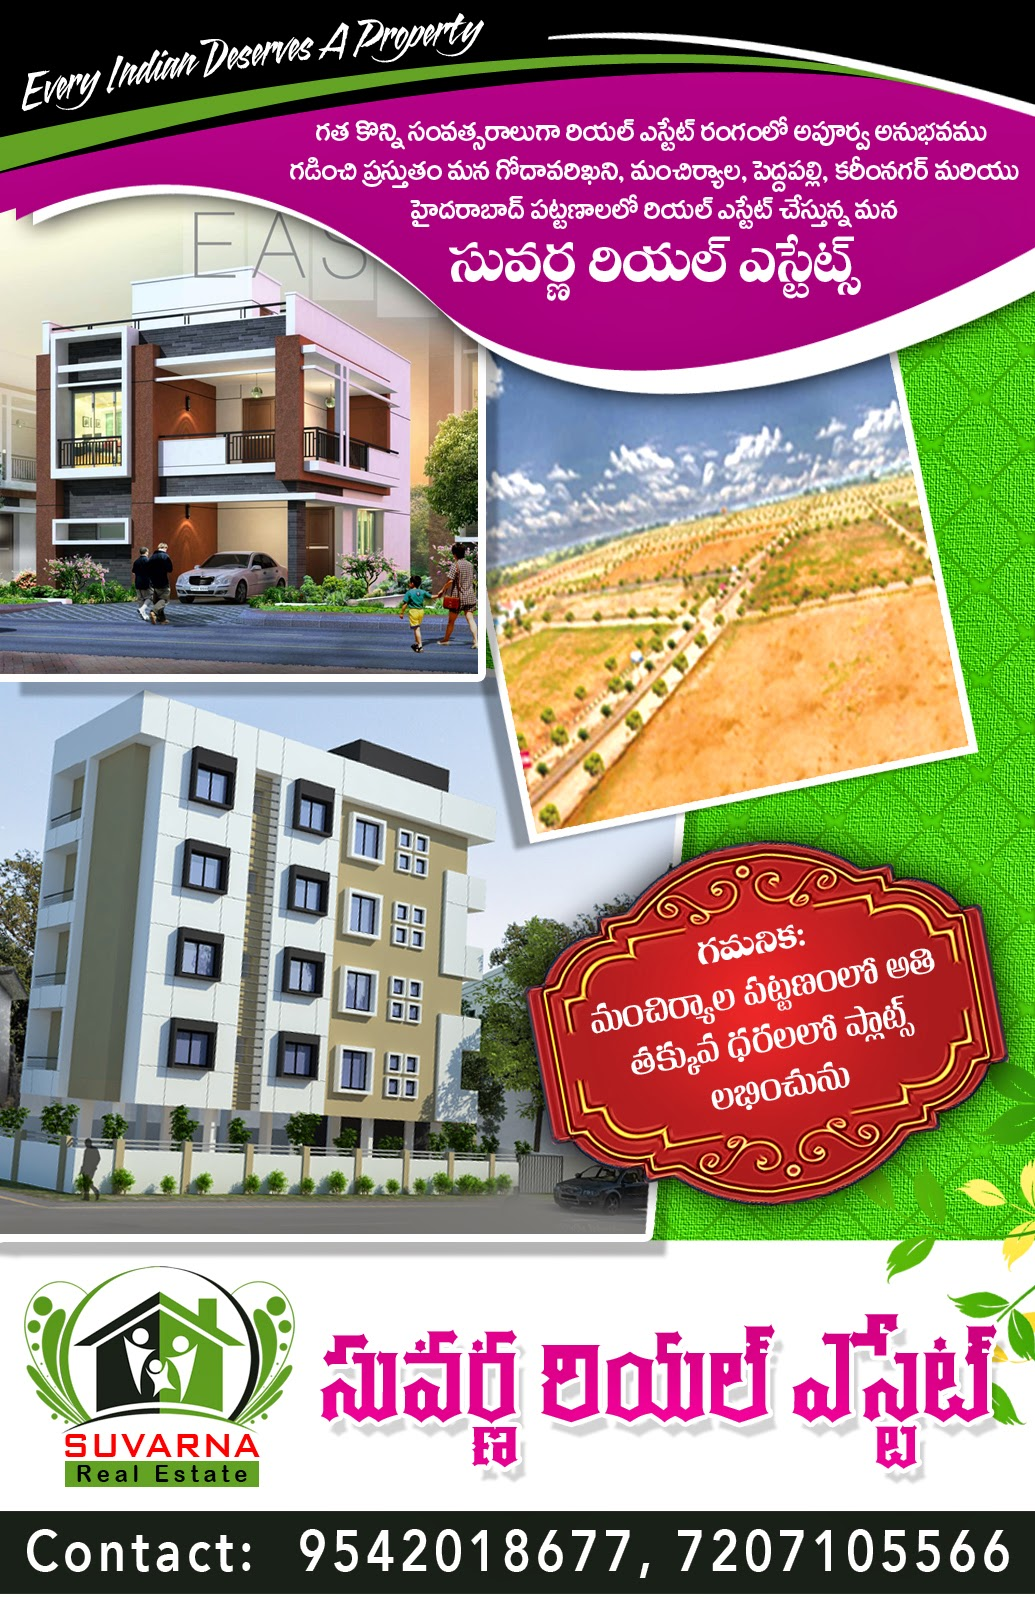 Suvarna Real Estate Best Brochure Design Naveengfx